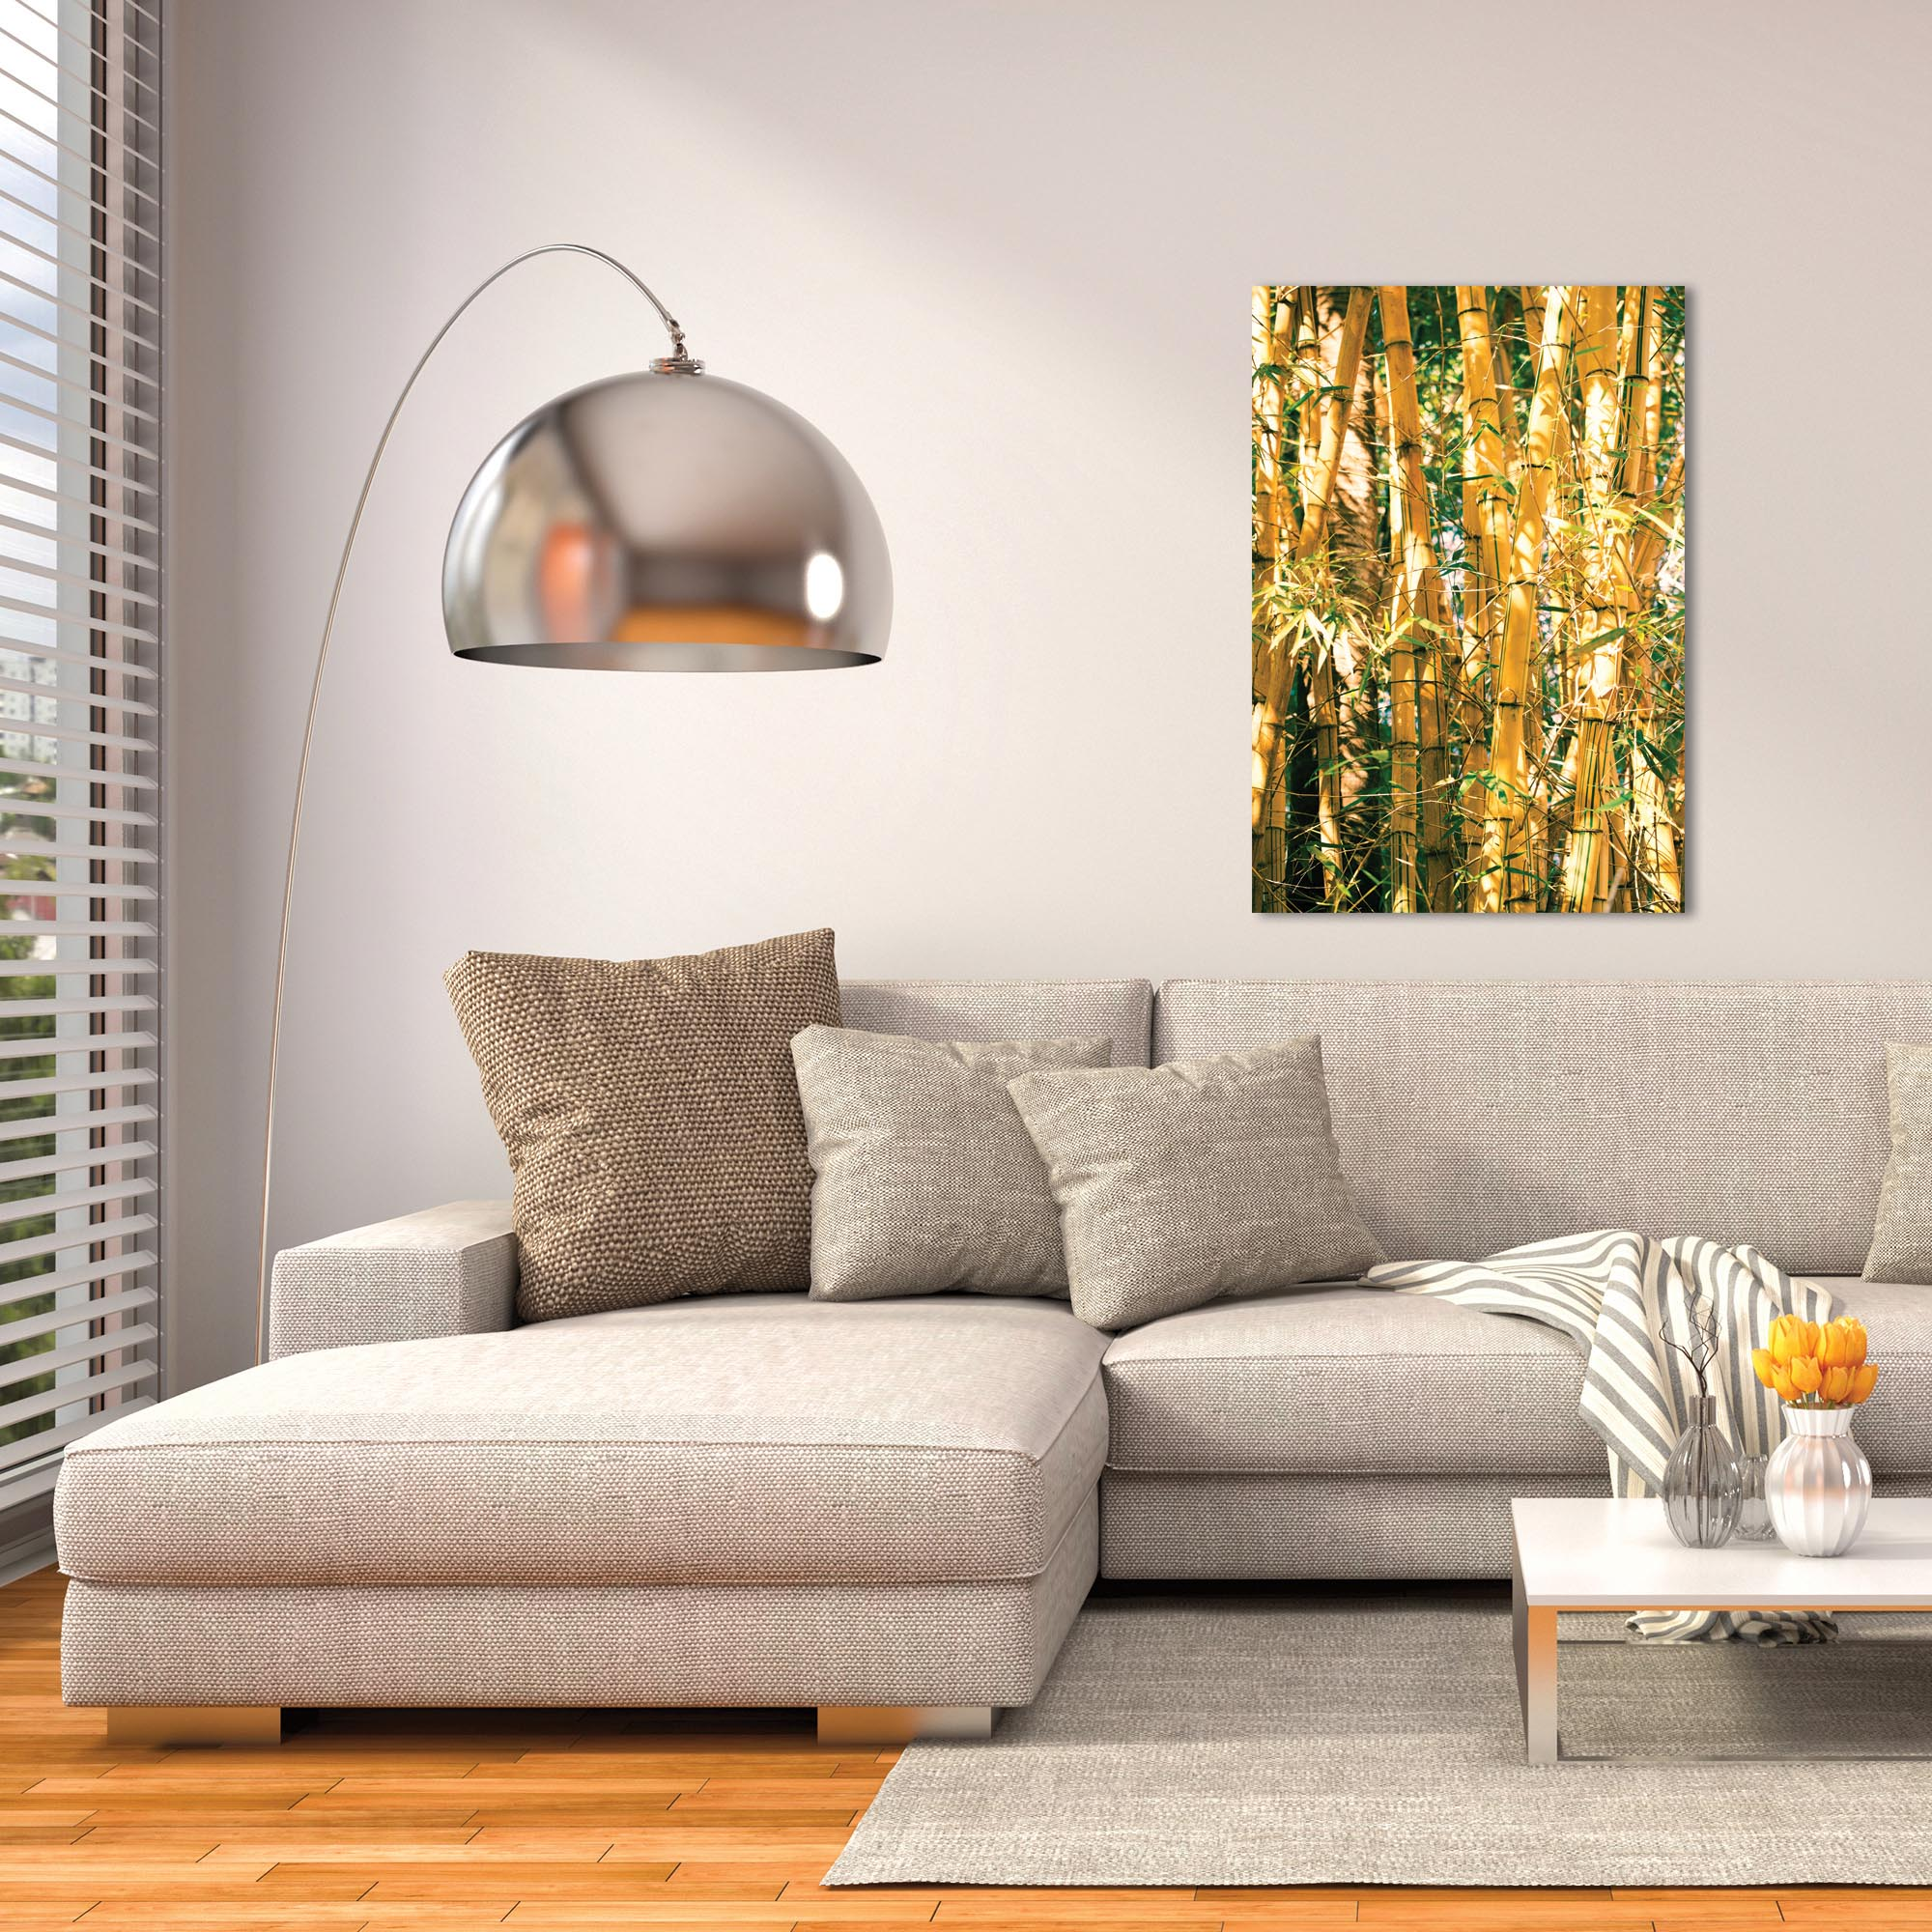 Asian Wall Art 'Bamboo Gold' - Bamboo Decor on Metal or Plexiglass - Lifestyle View